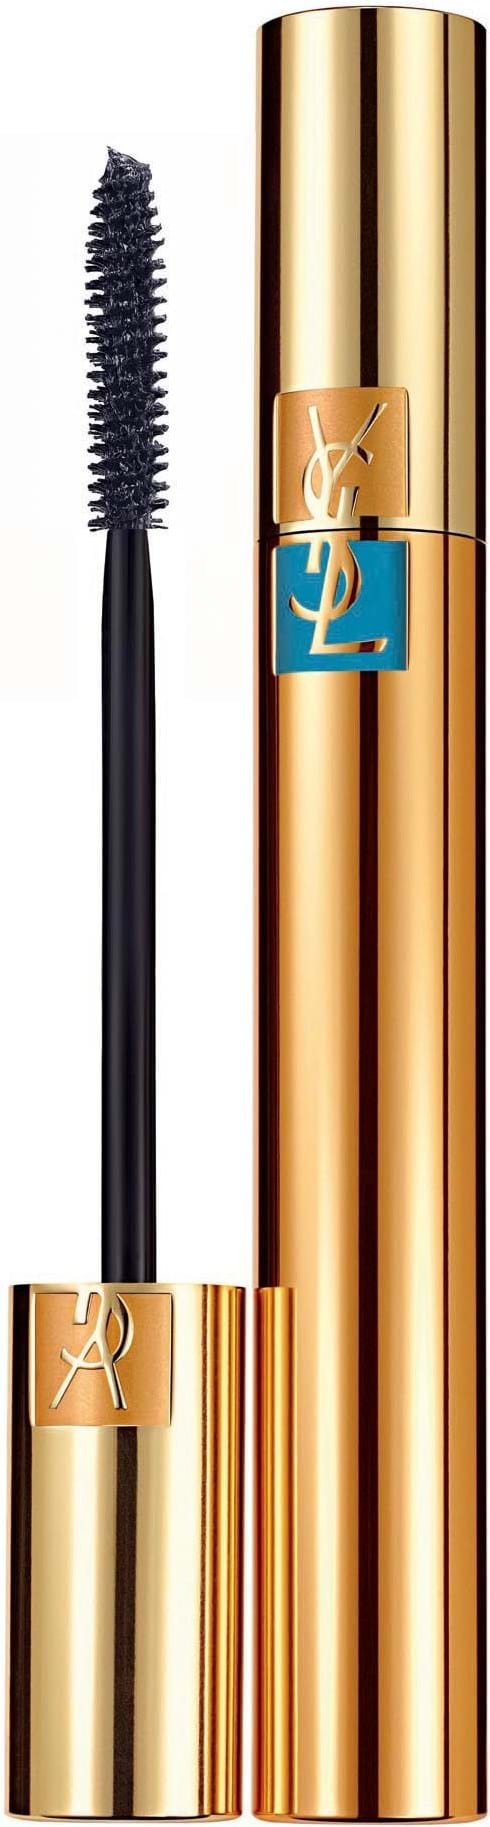 Yves Saint Laurent Volume Effet Faux Cils Mascara N° 01 Charcoal Black Waterproof